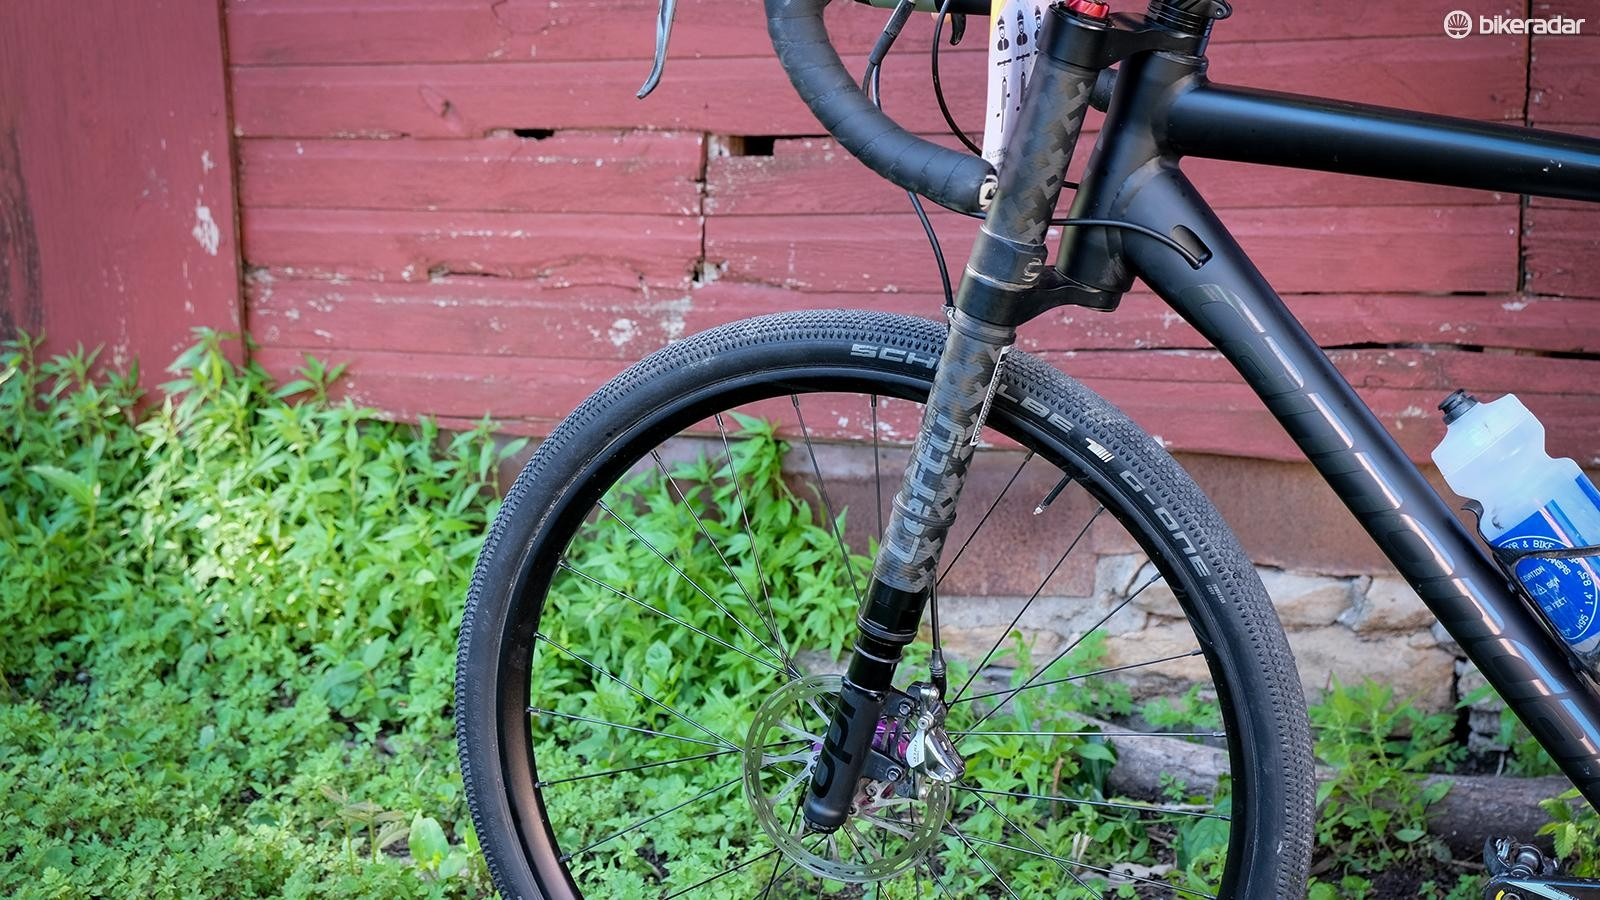 The Lefty Oliver provides a scant 30mm of suspension — just enough to take the edge off gravel roads